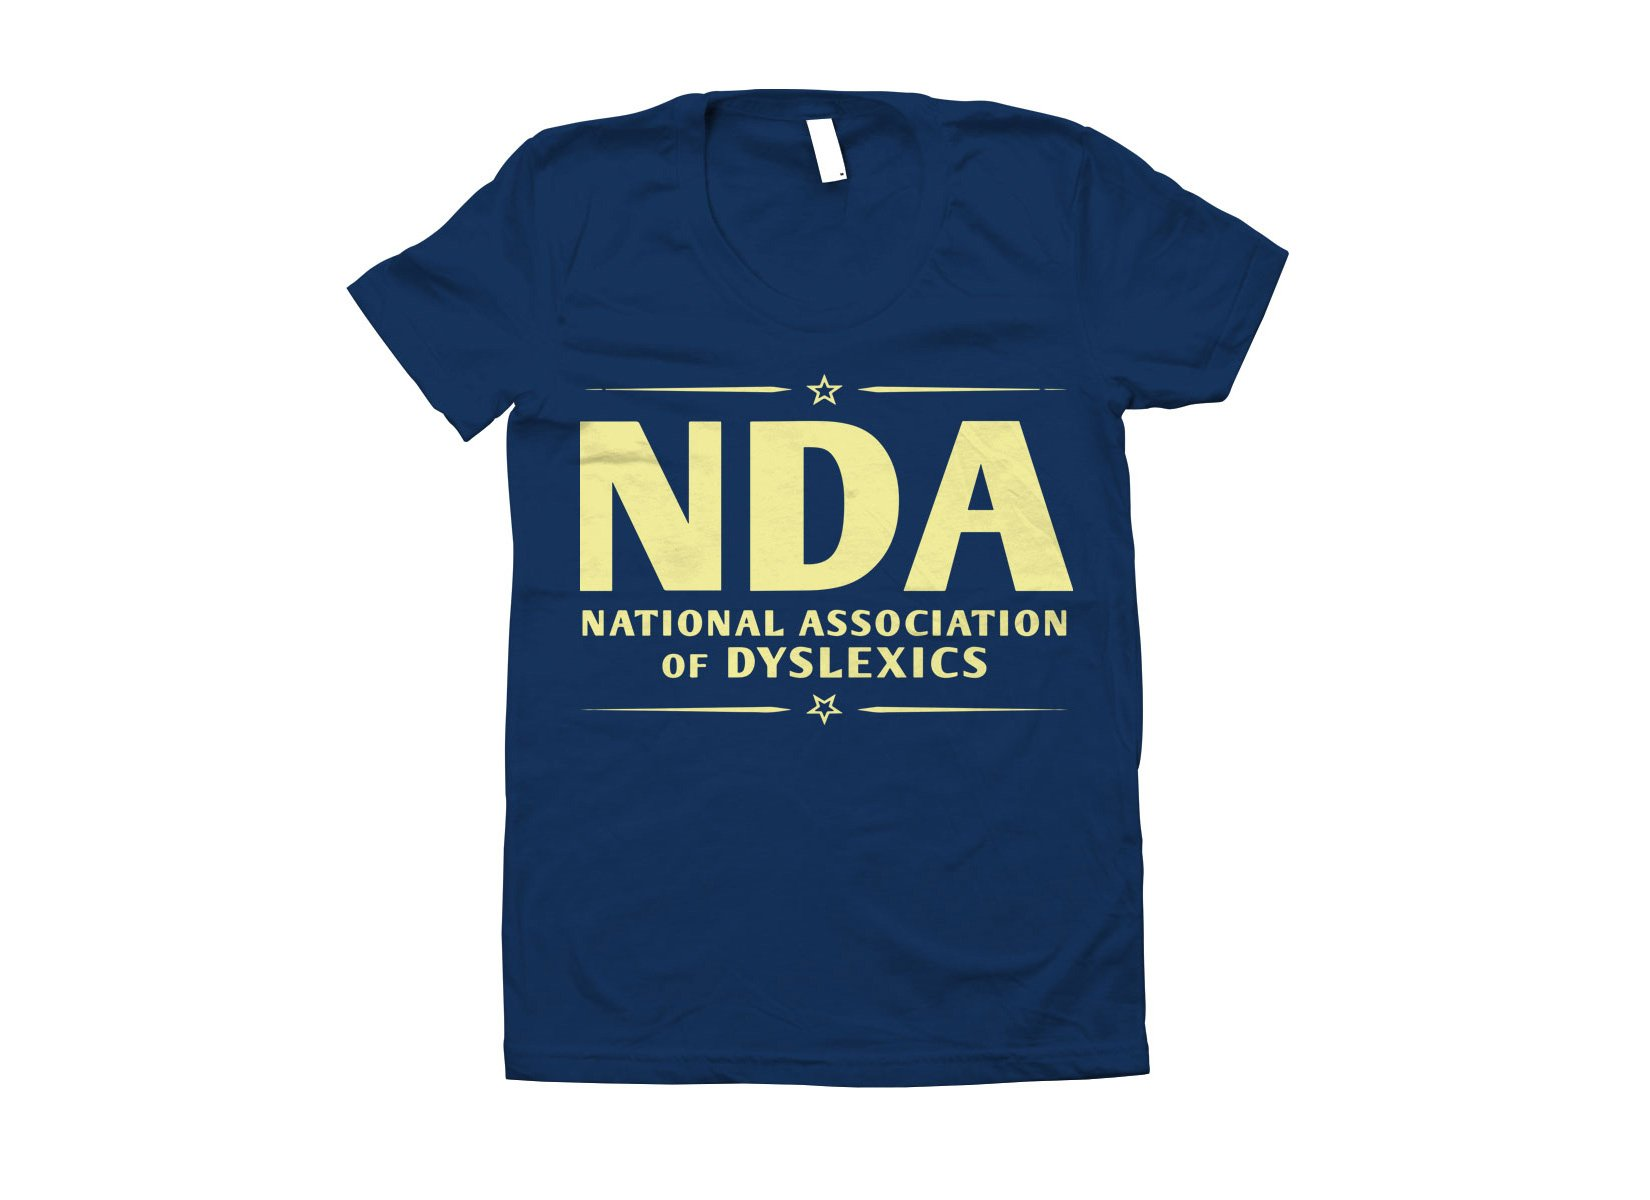 National Association of Dyslexics on Juniors T-Shirt